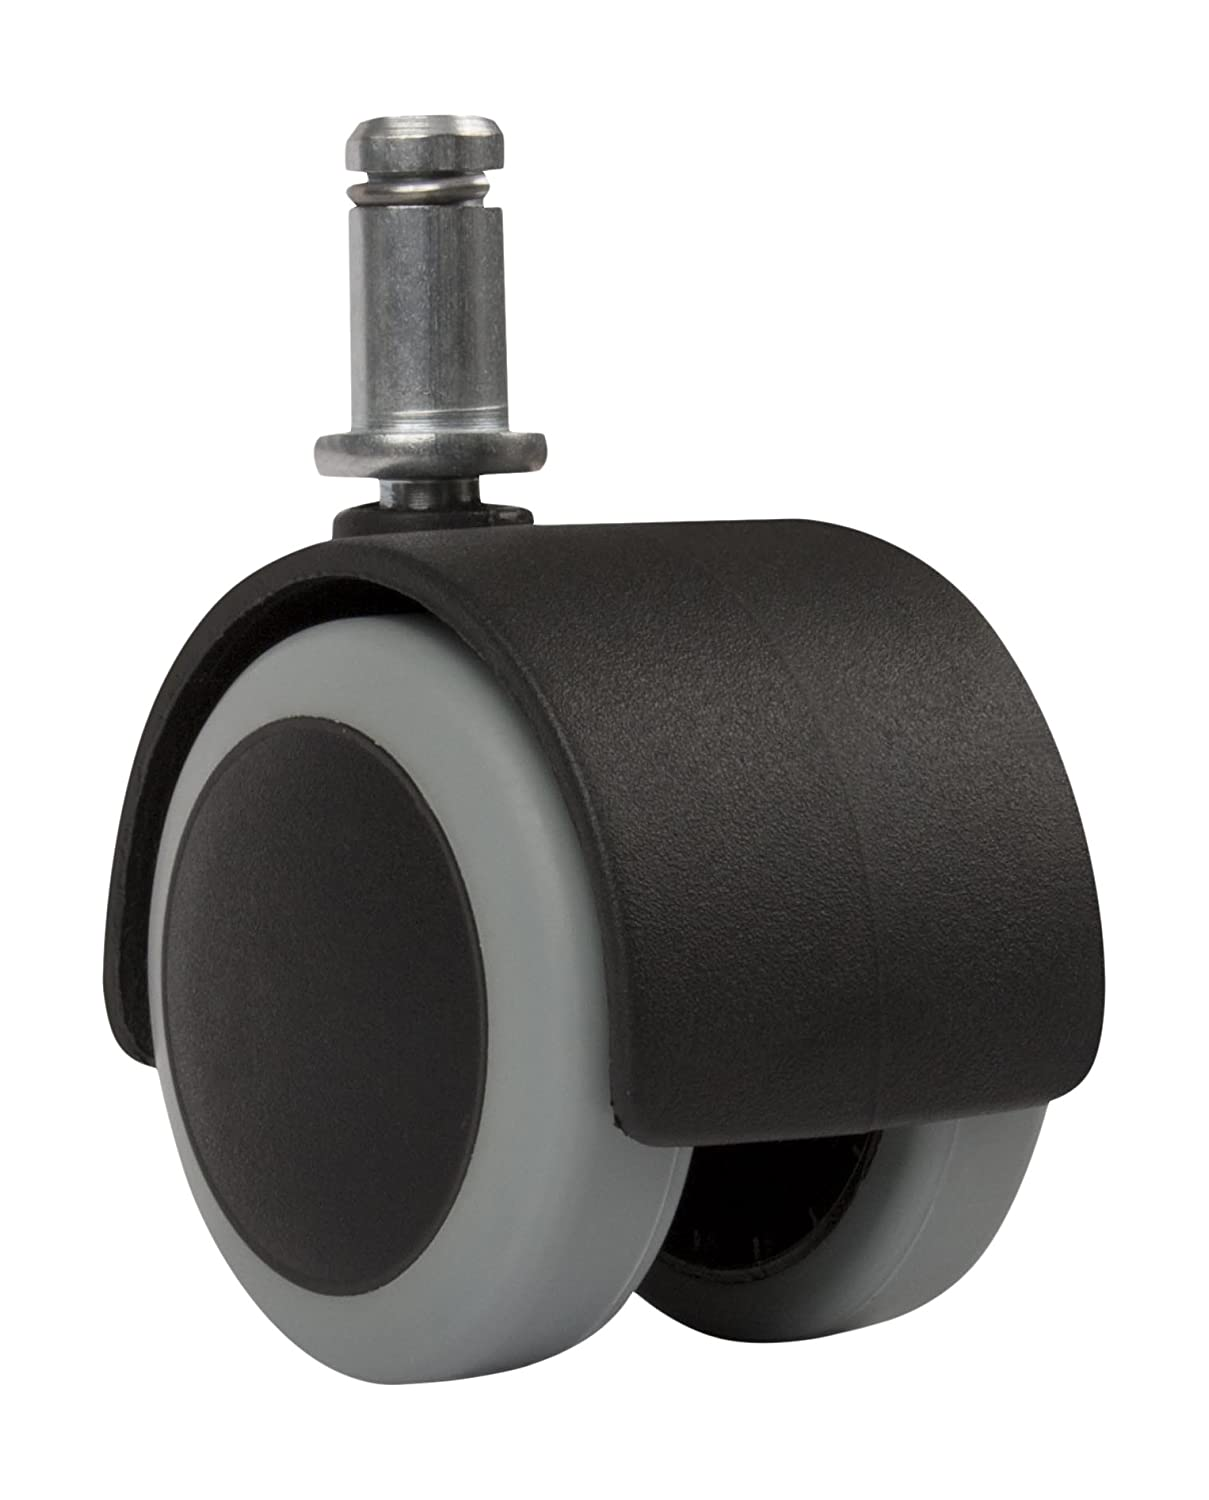 Rubber Office Chair Caster Wheels